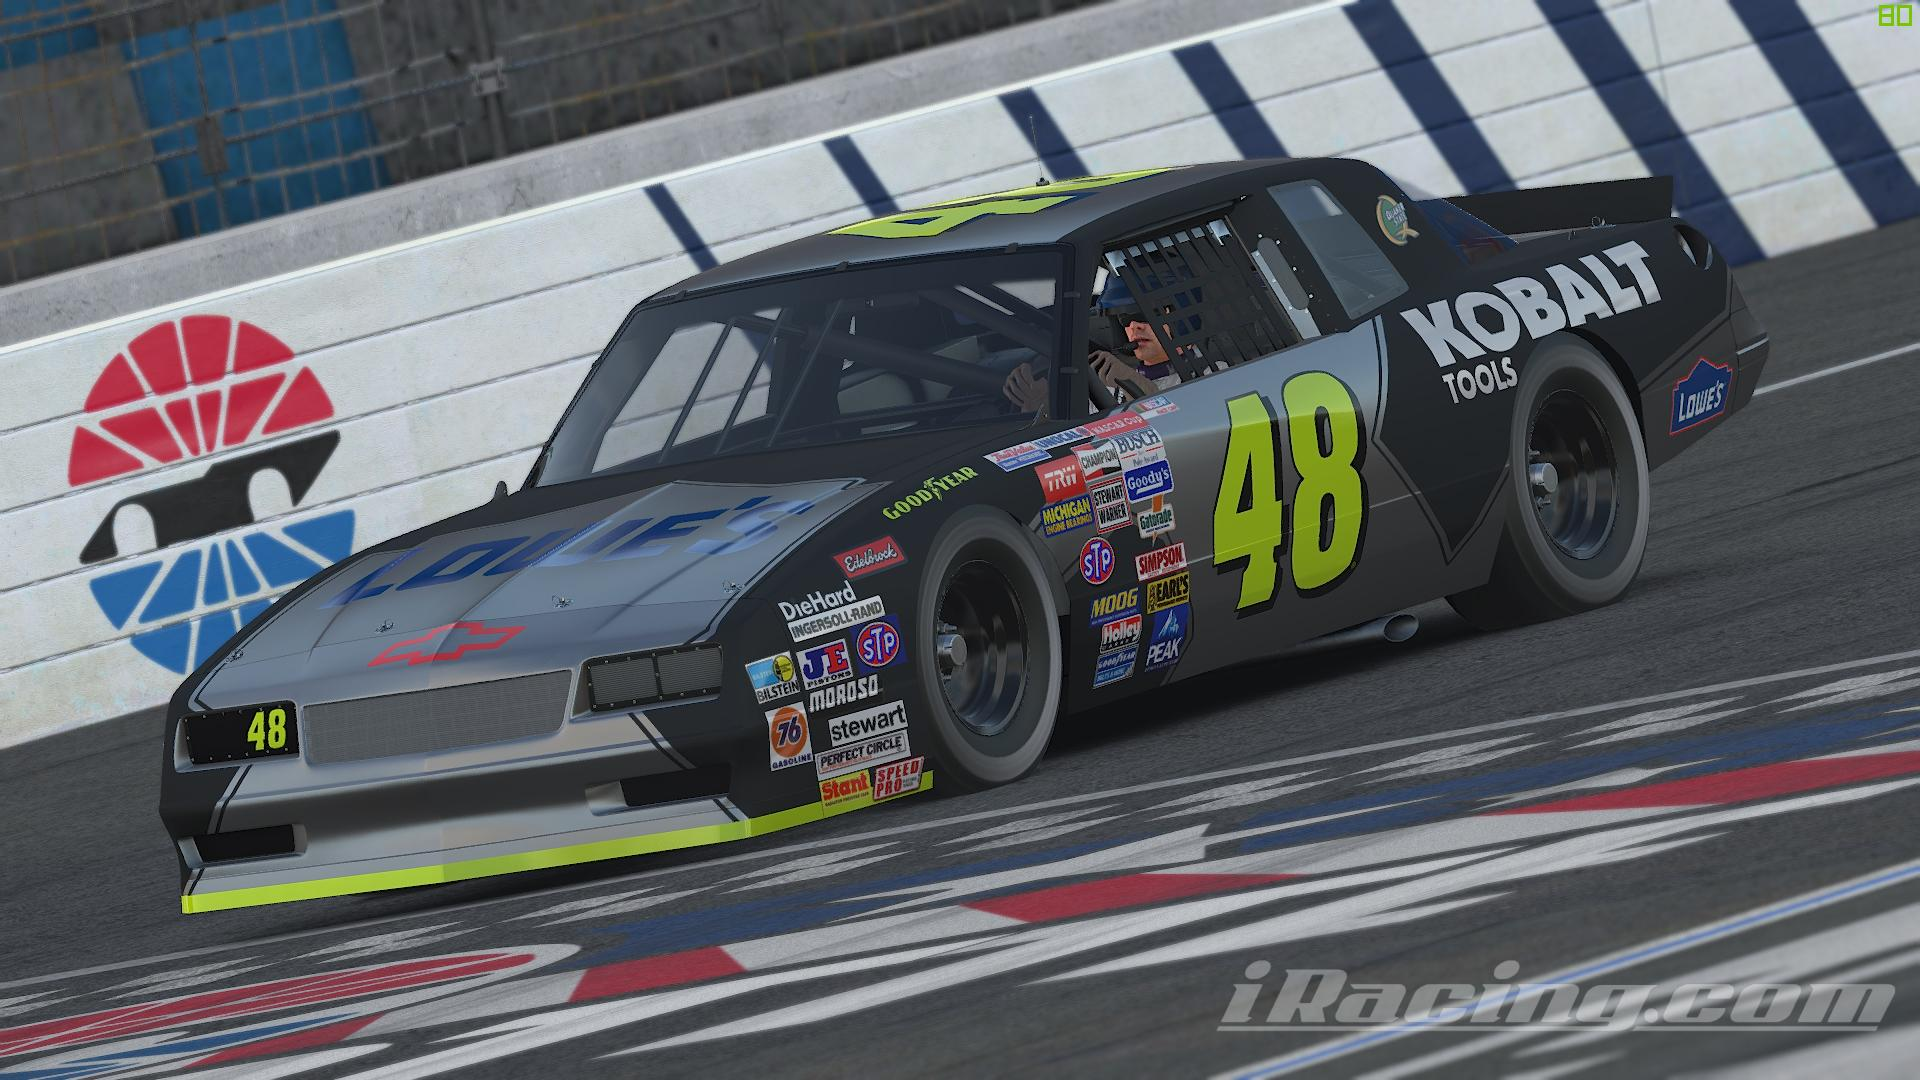 Preview of 1987 Jimmie Johnson Kobalt Tools Chevrolet Monte Carlo (CUSTOM NUMBER) by Sean Peleg